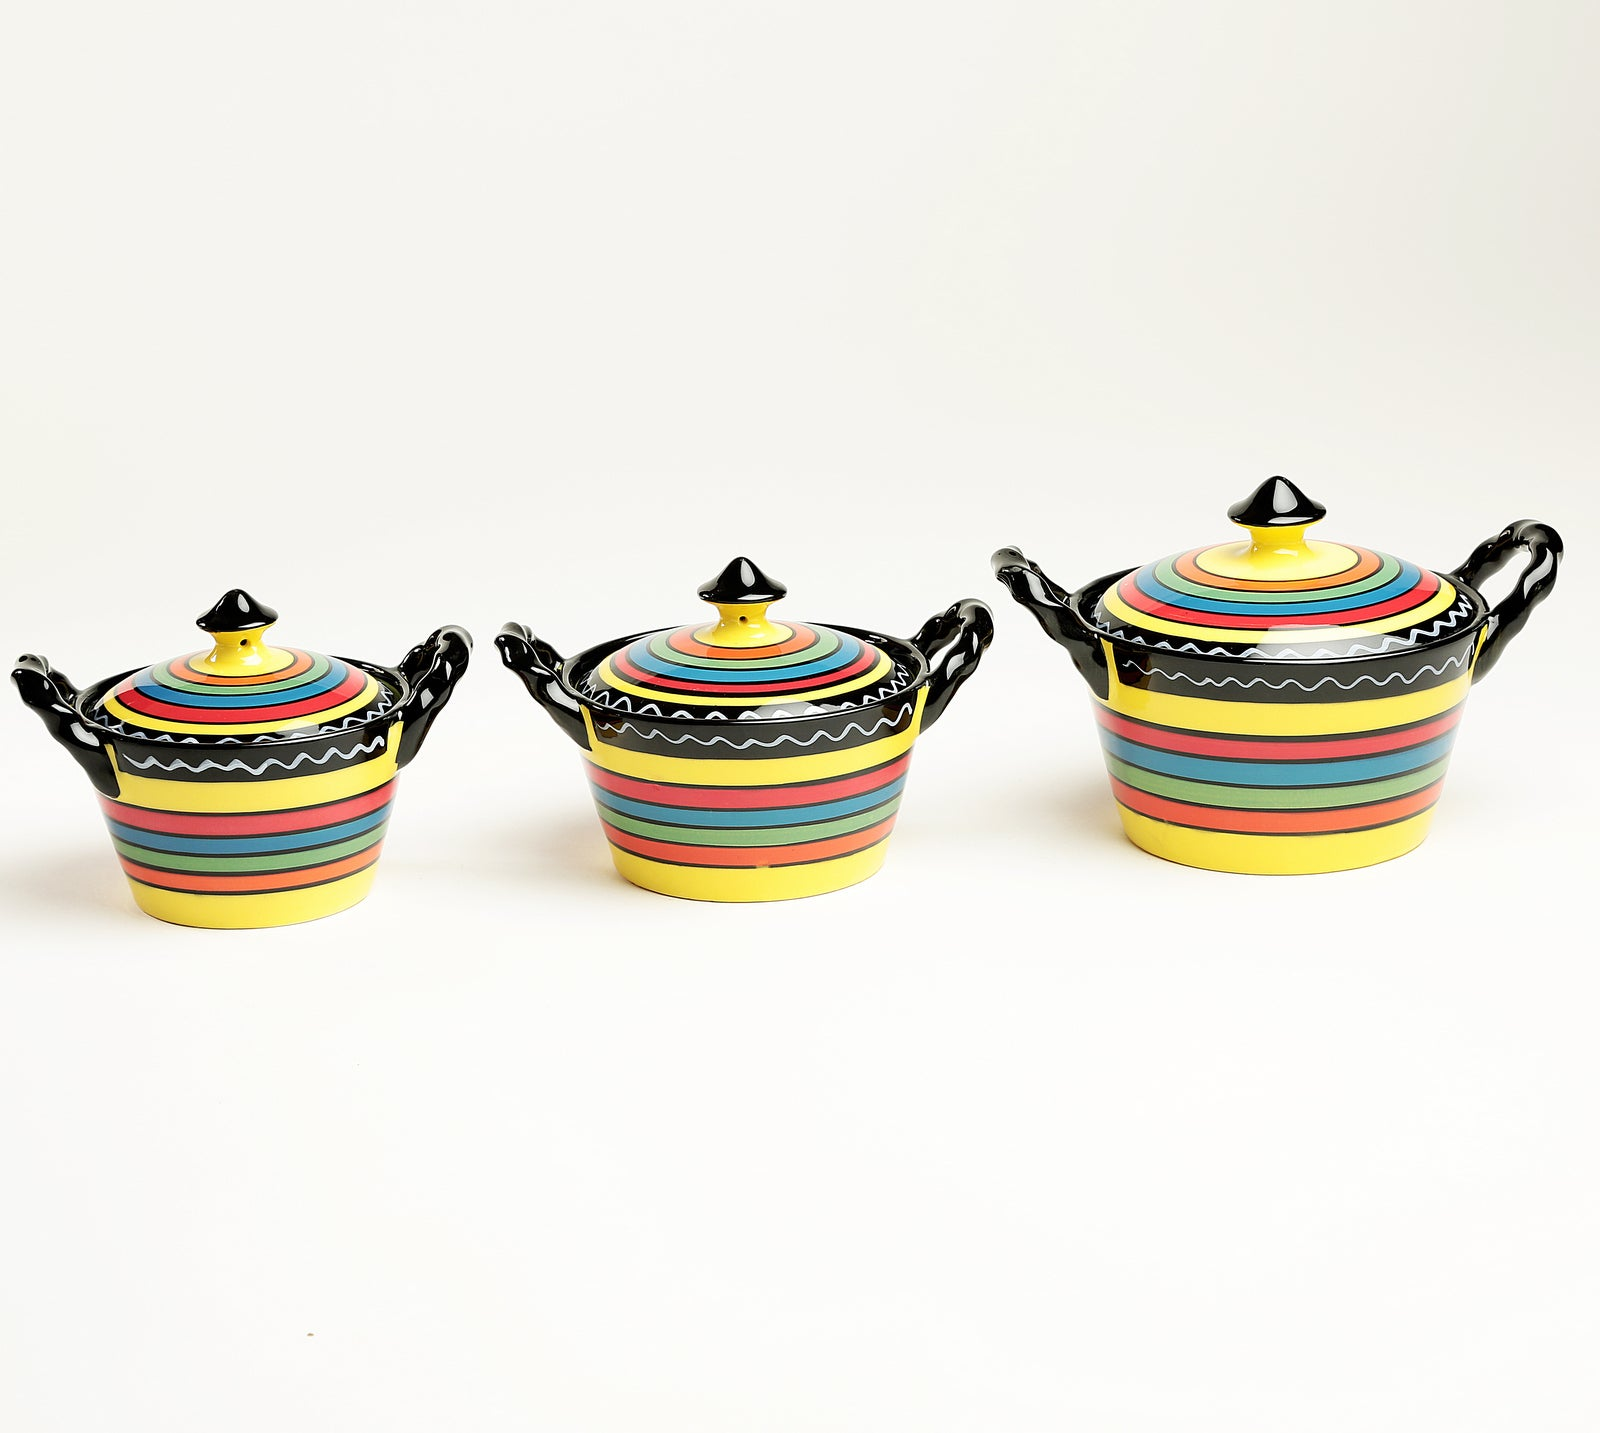 Multicolor Ceramic Serving Bowls with Lid - Set of 3